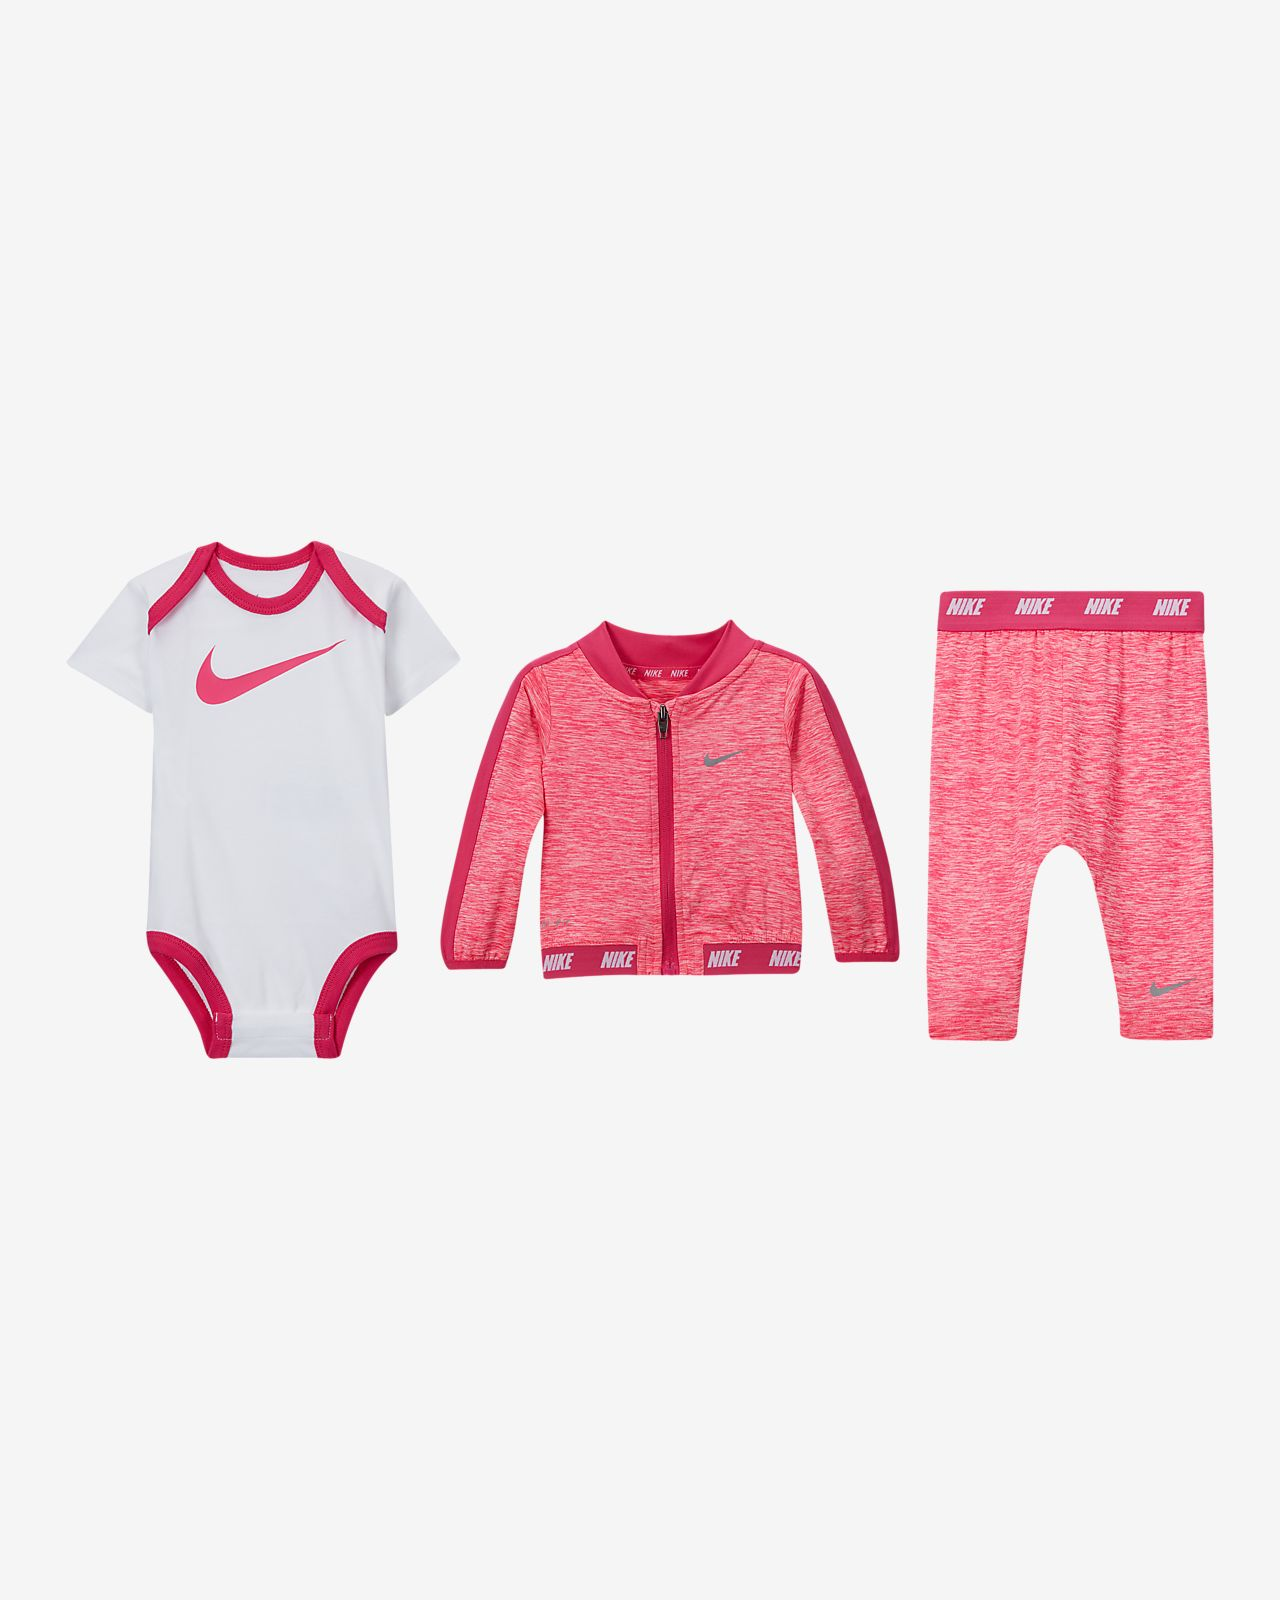 Nike Sport Essentials Baby (0-6M) Bodysuit, Jacket and Pants Set